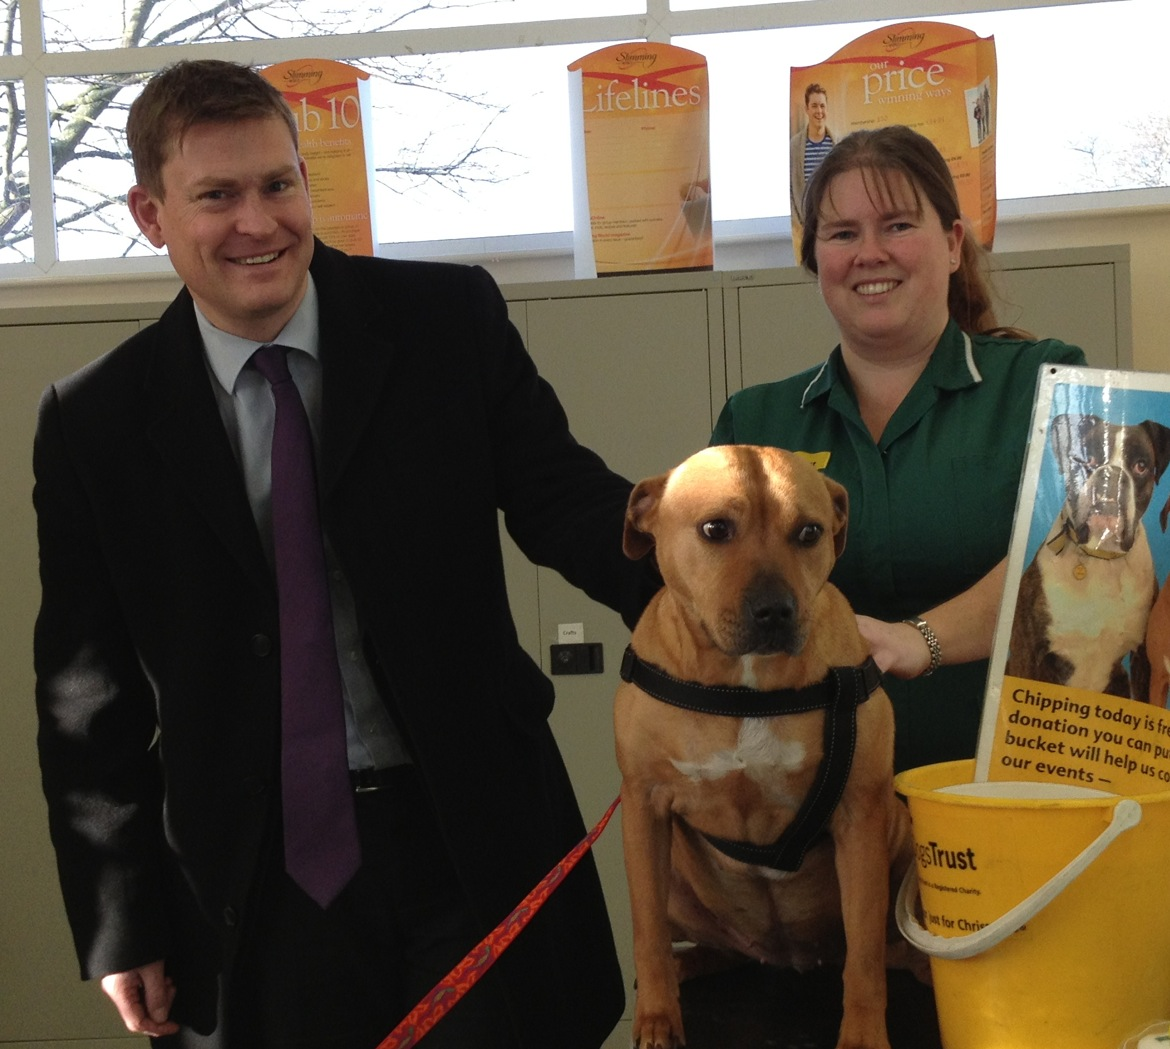 Justin_Madders_with_Dogs_Trust_Veterinary_Nurse_Laura_Lacey_at_the_event....jpg